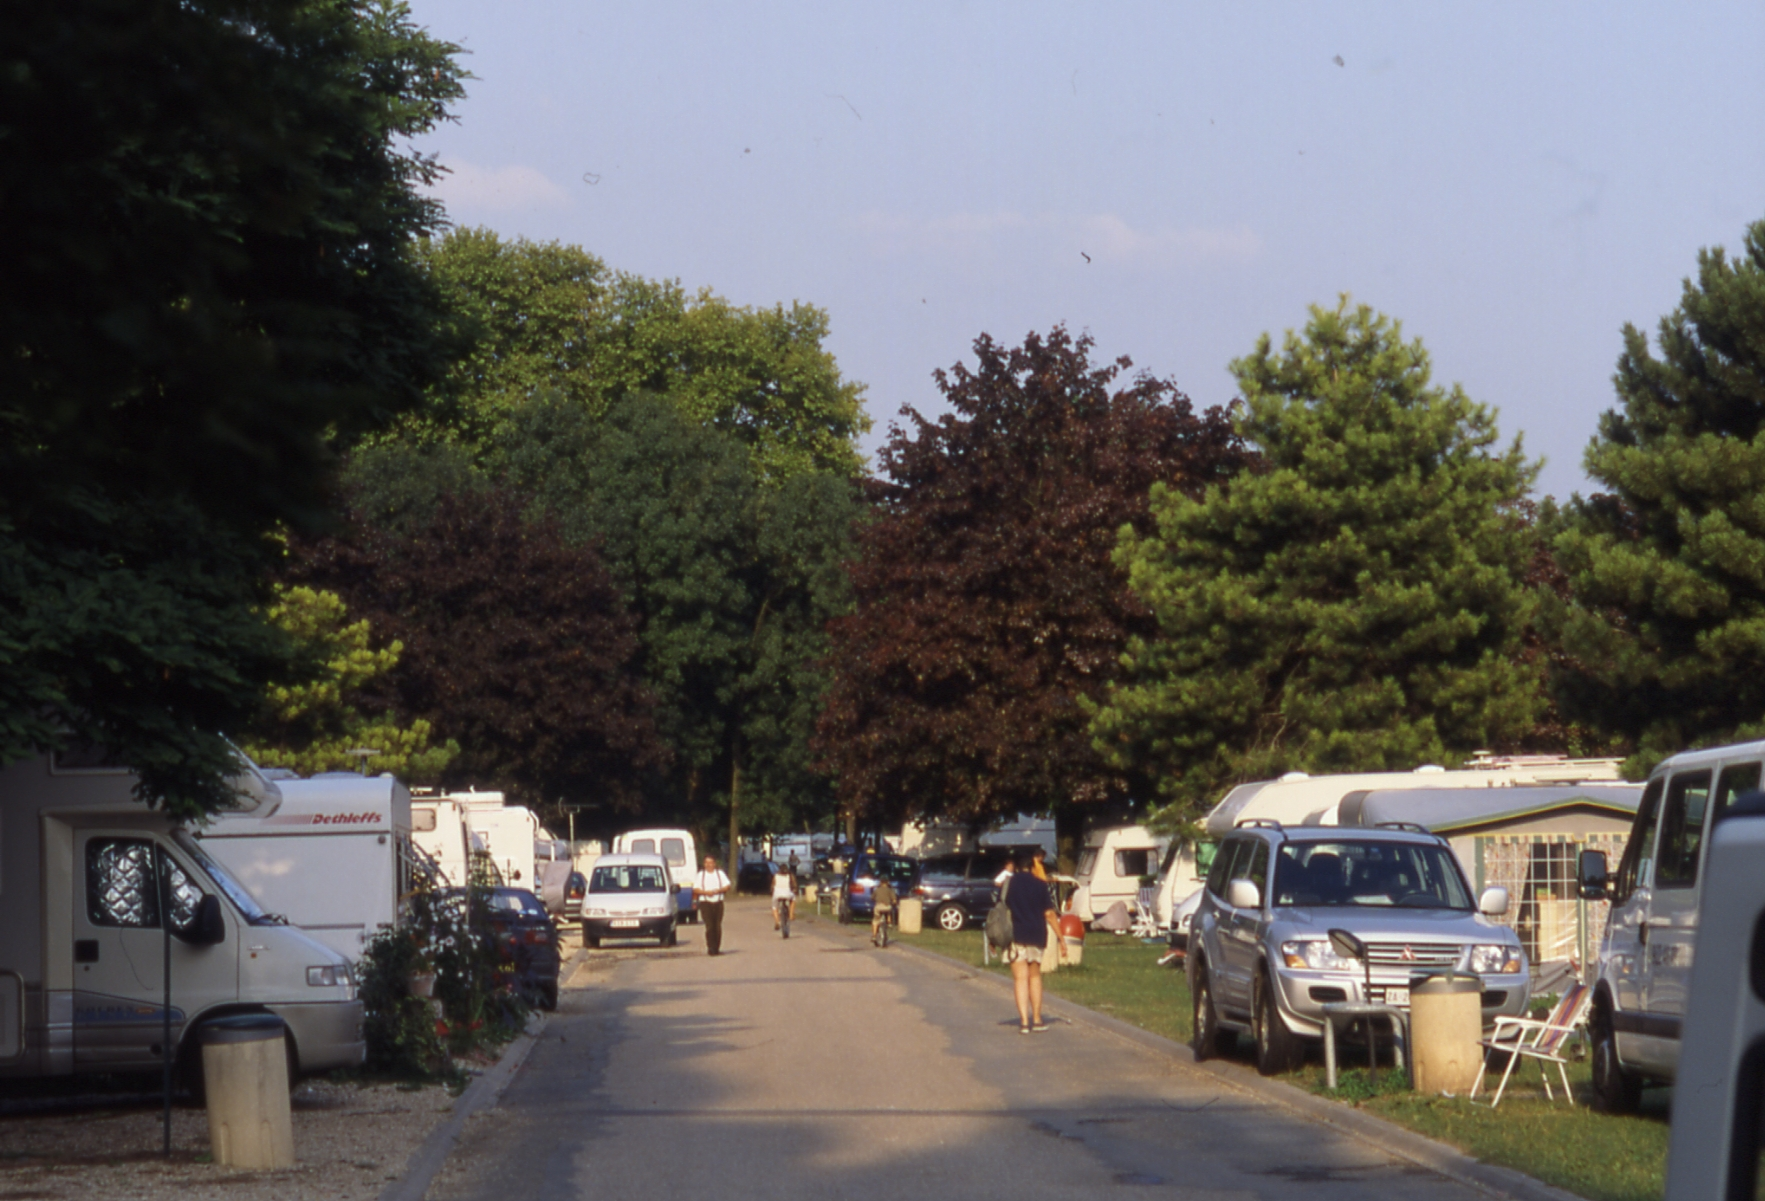 champigny-sur-marne-camping--7.JPG